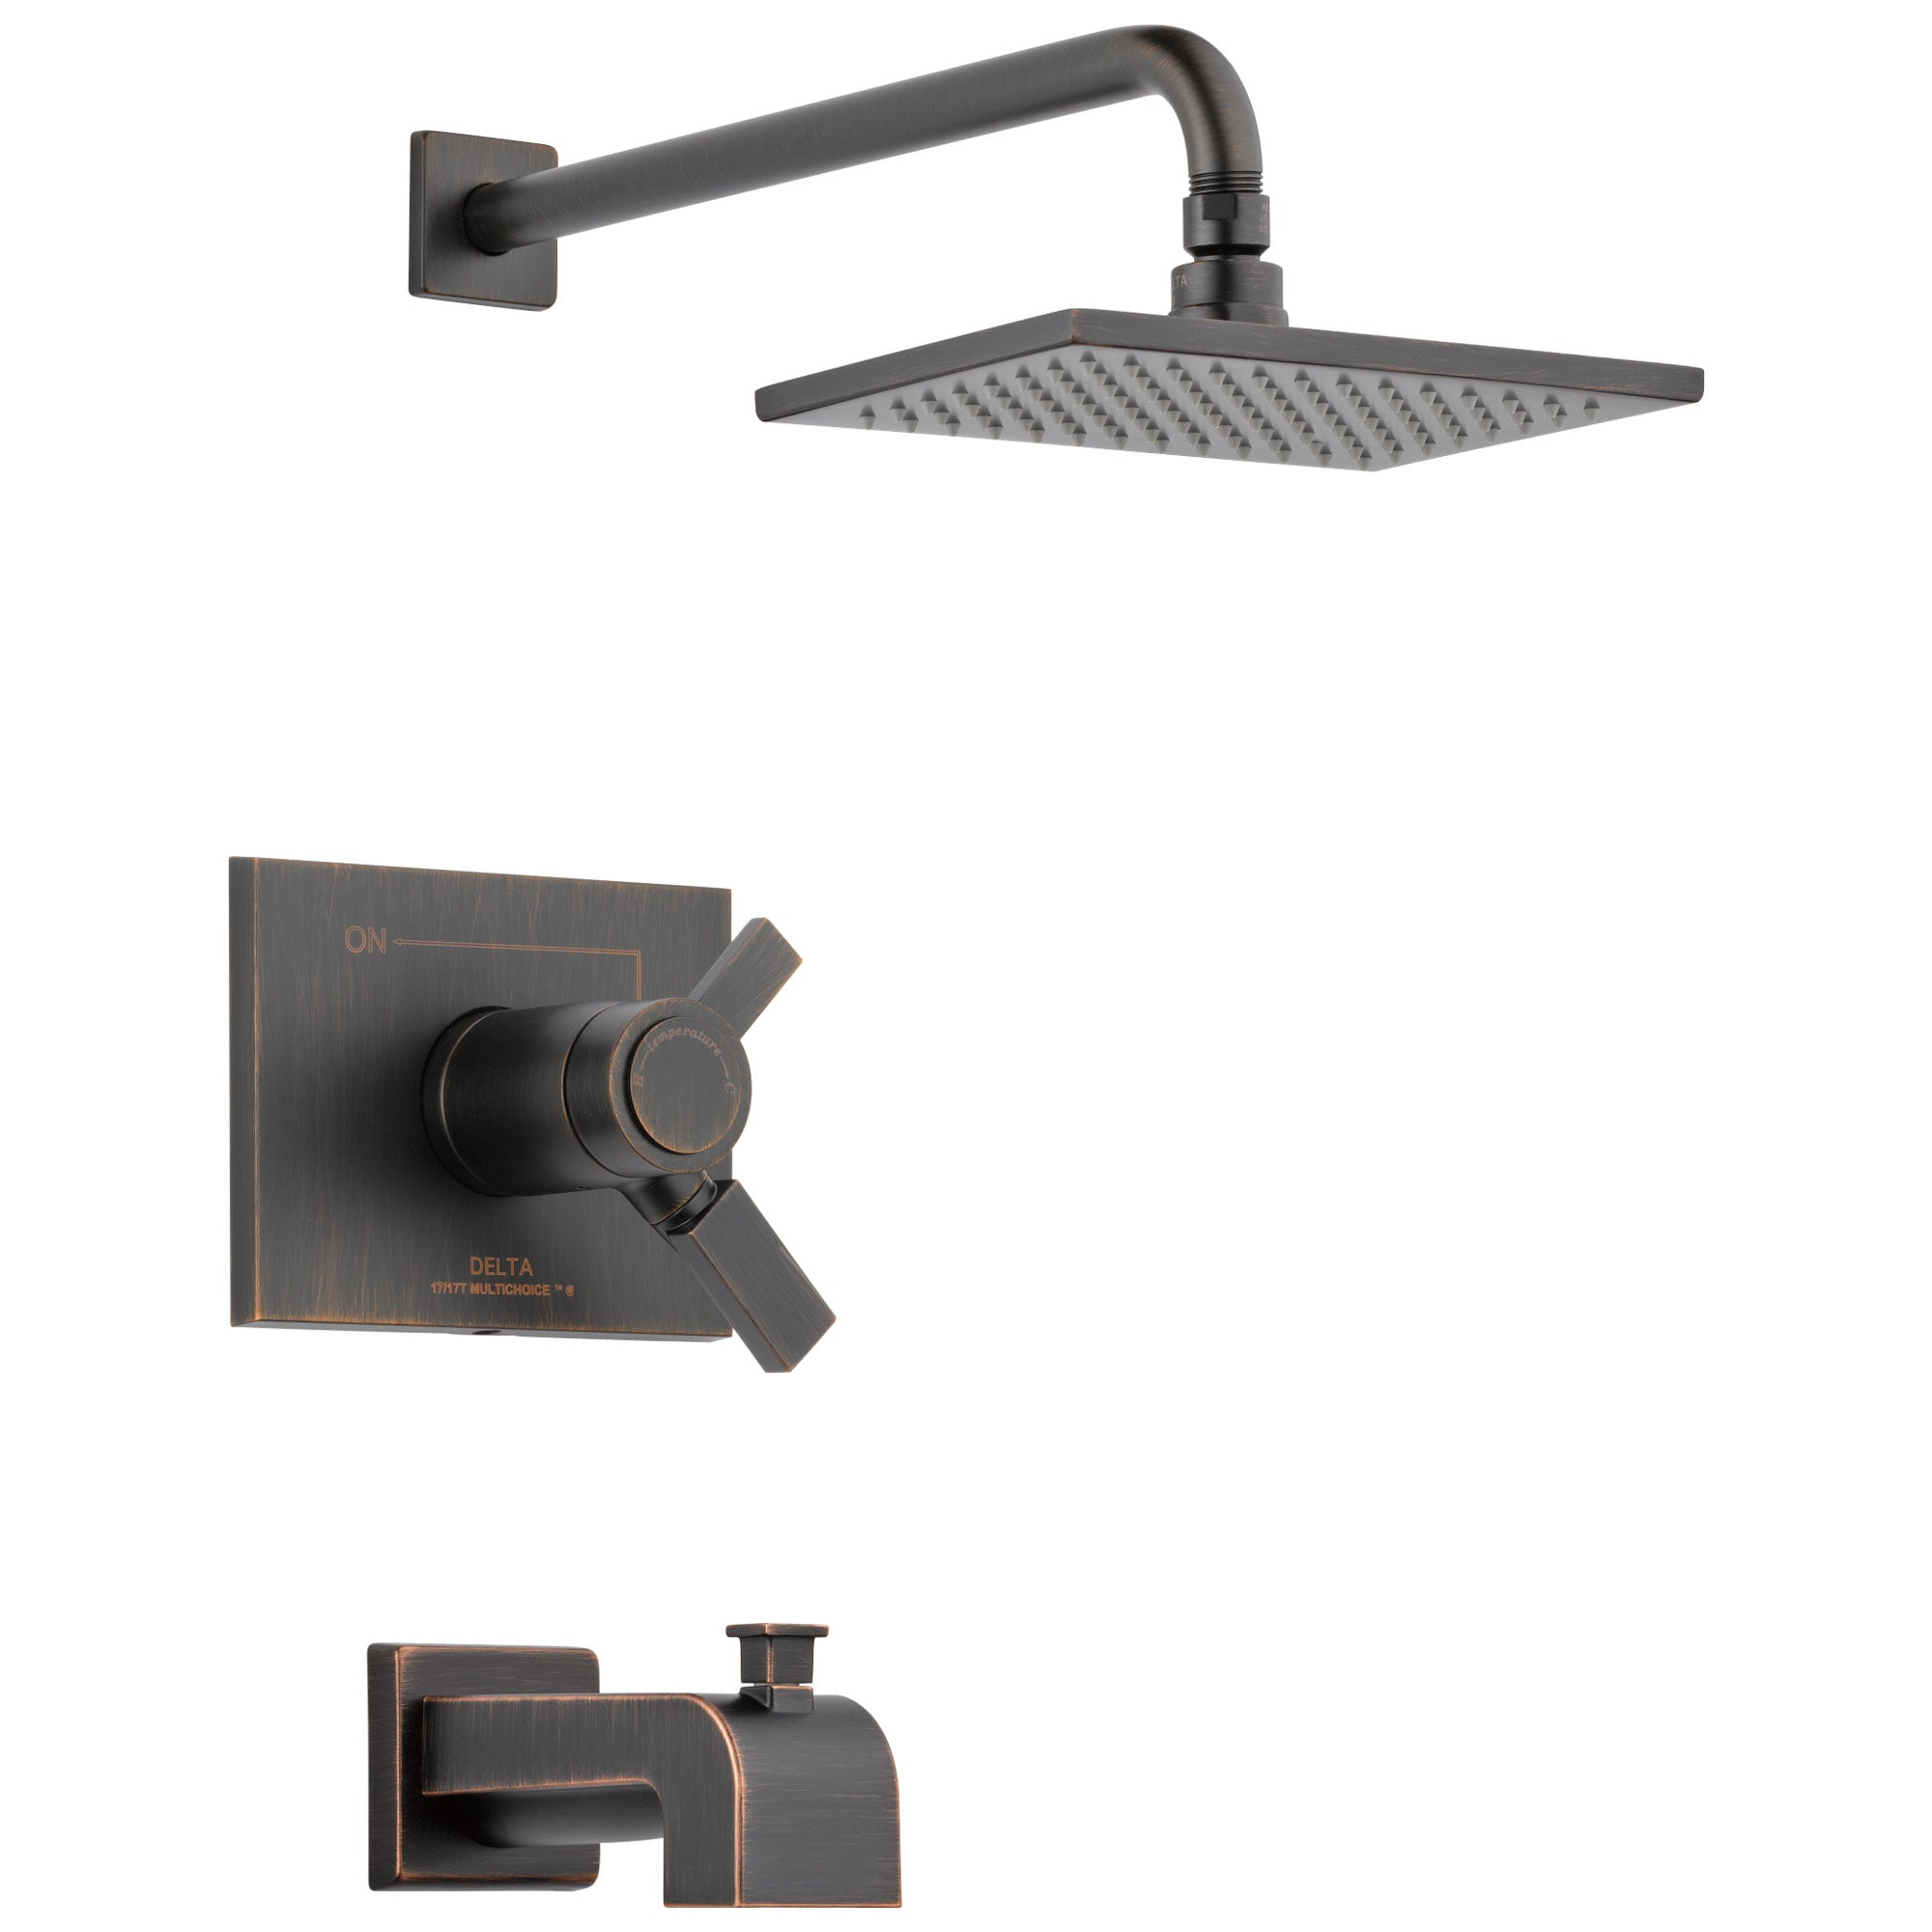 Delta Vero Venetian Bronze Finish Water Efficient Thermostatic Tub & Shower Faucet Combo Includes Cartridge, Handles, and Valve without Stops D3239V